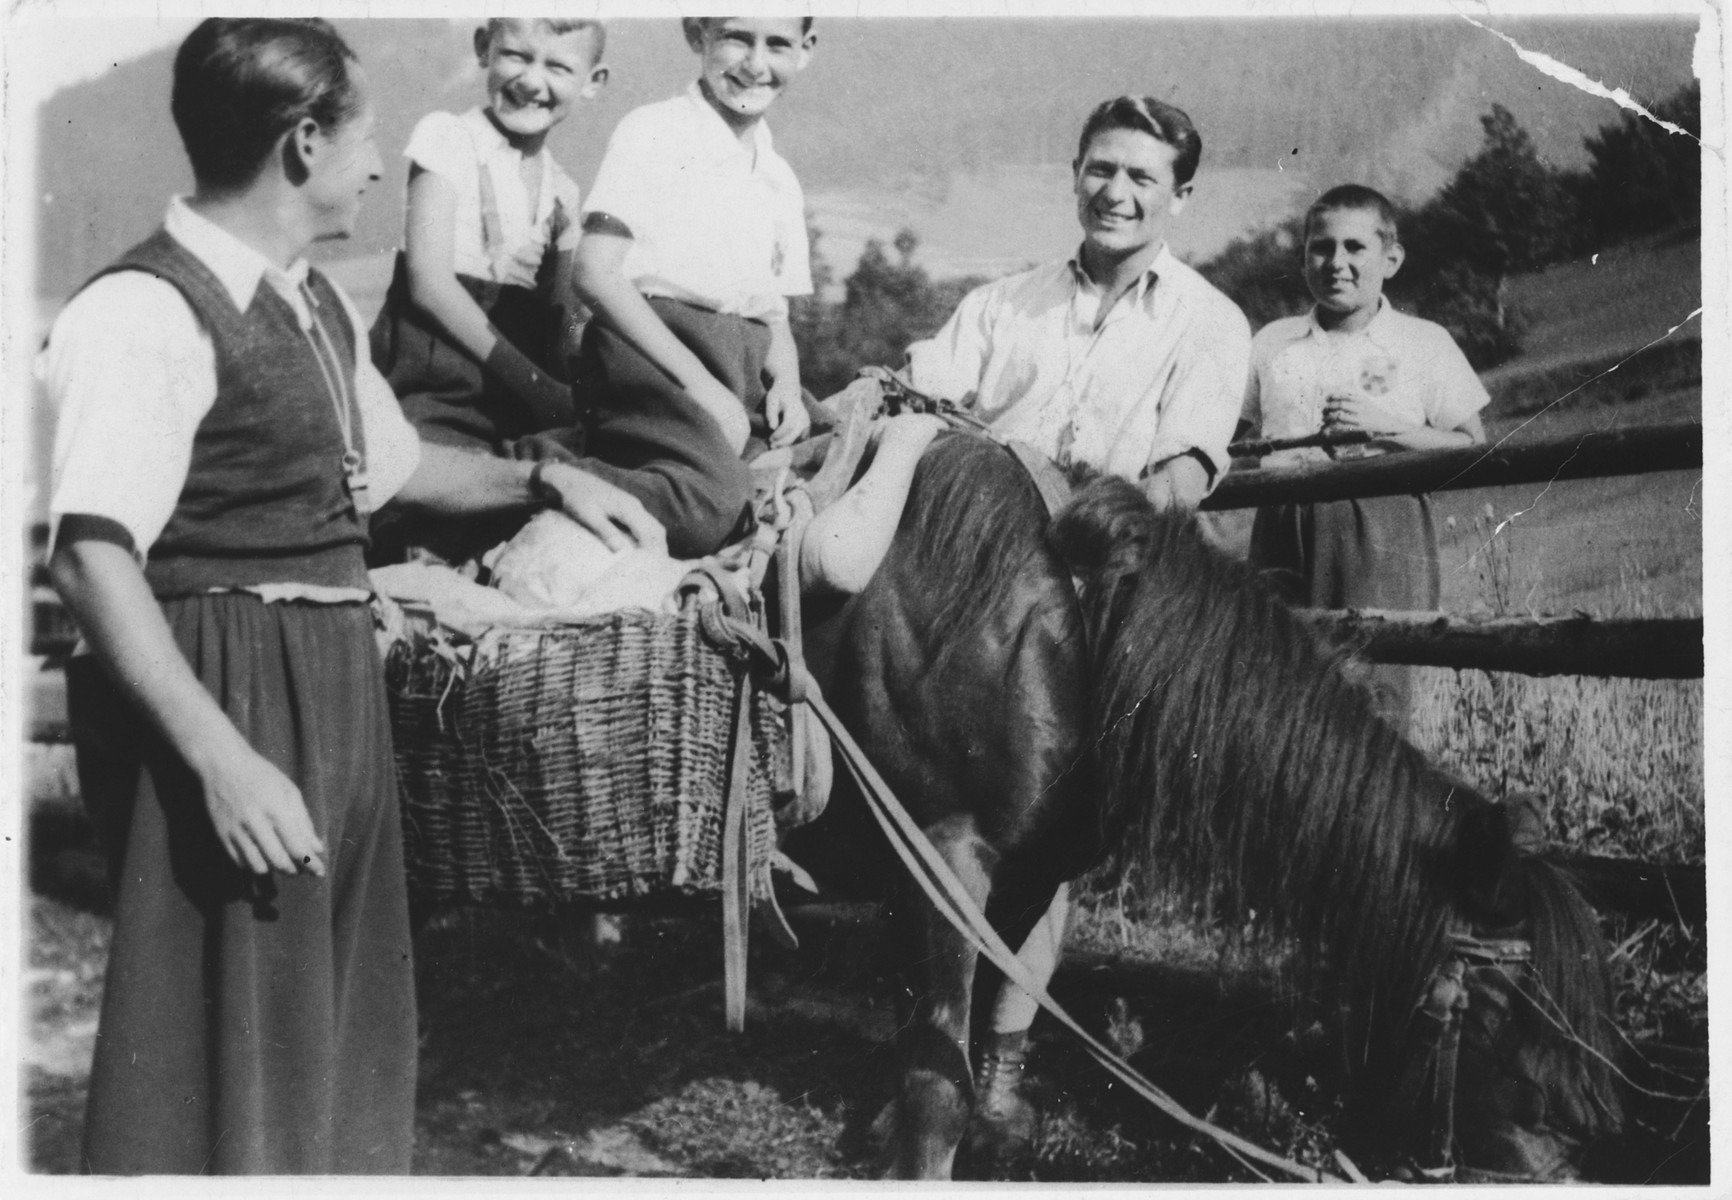 Members of the Bar Kochba group led by Alex Hochhauser go for a horseback ride in the country shortly before their deportation.